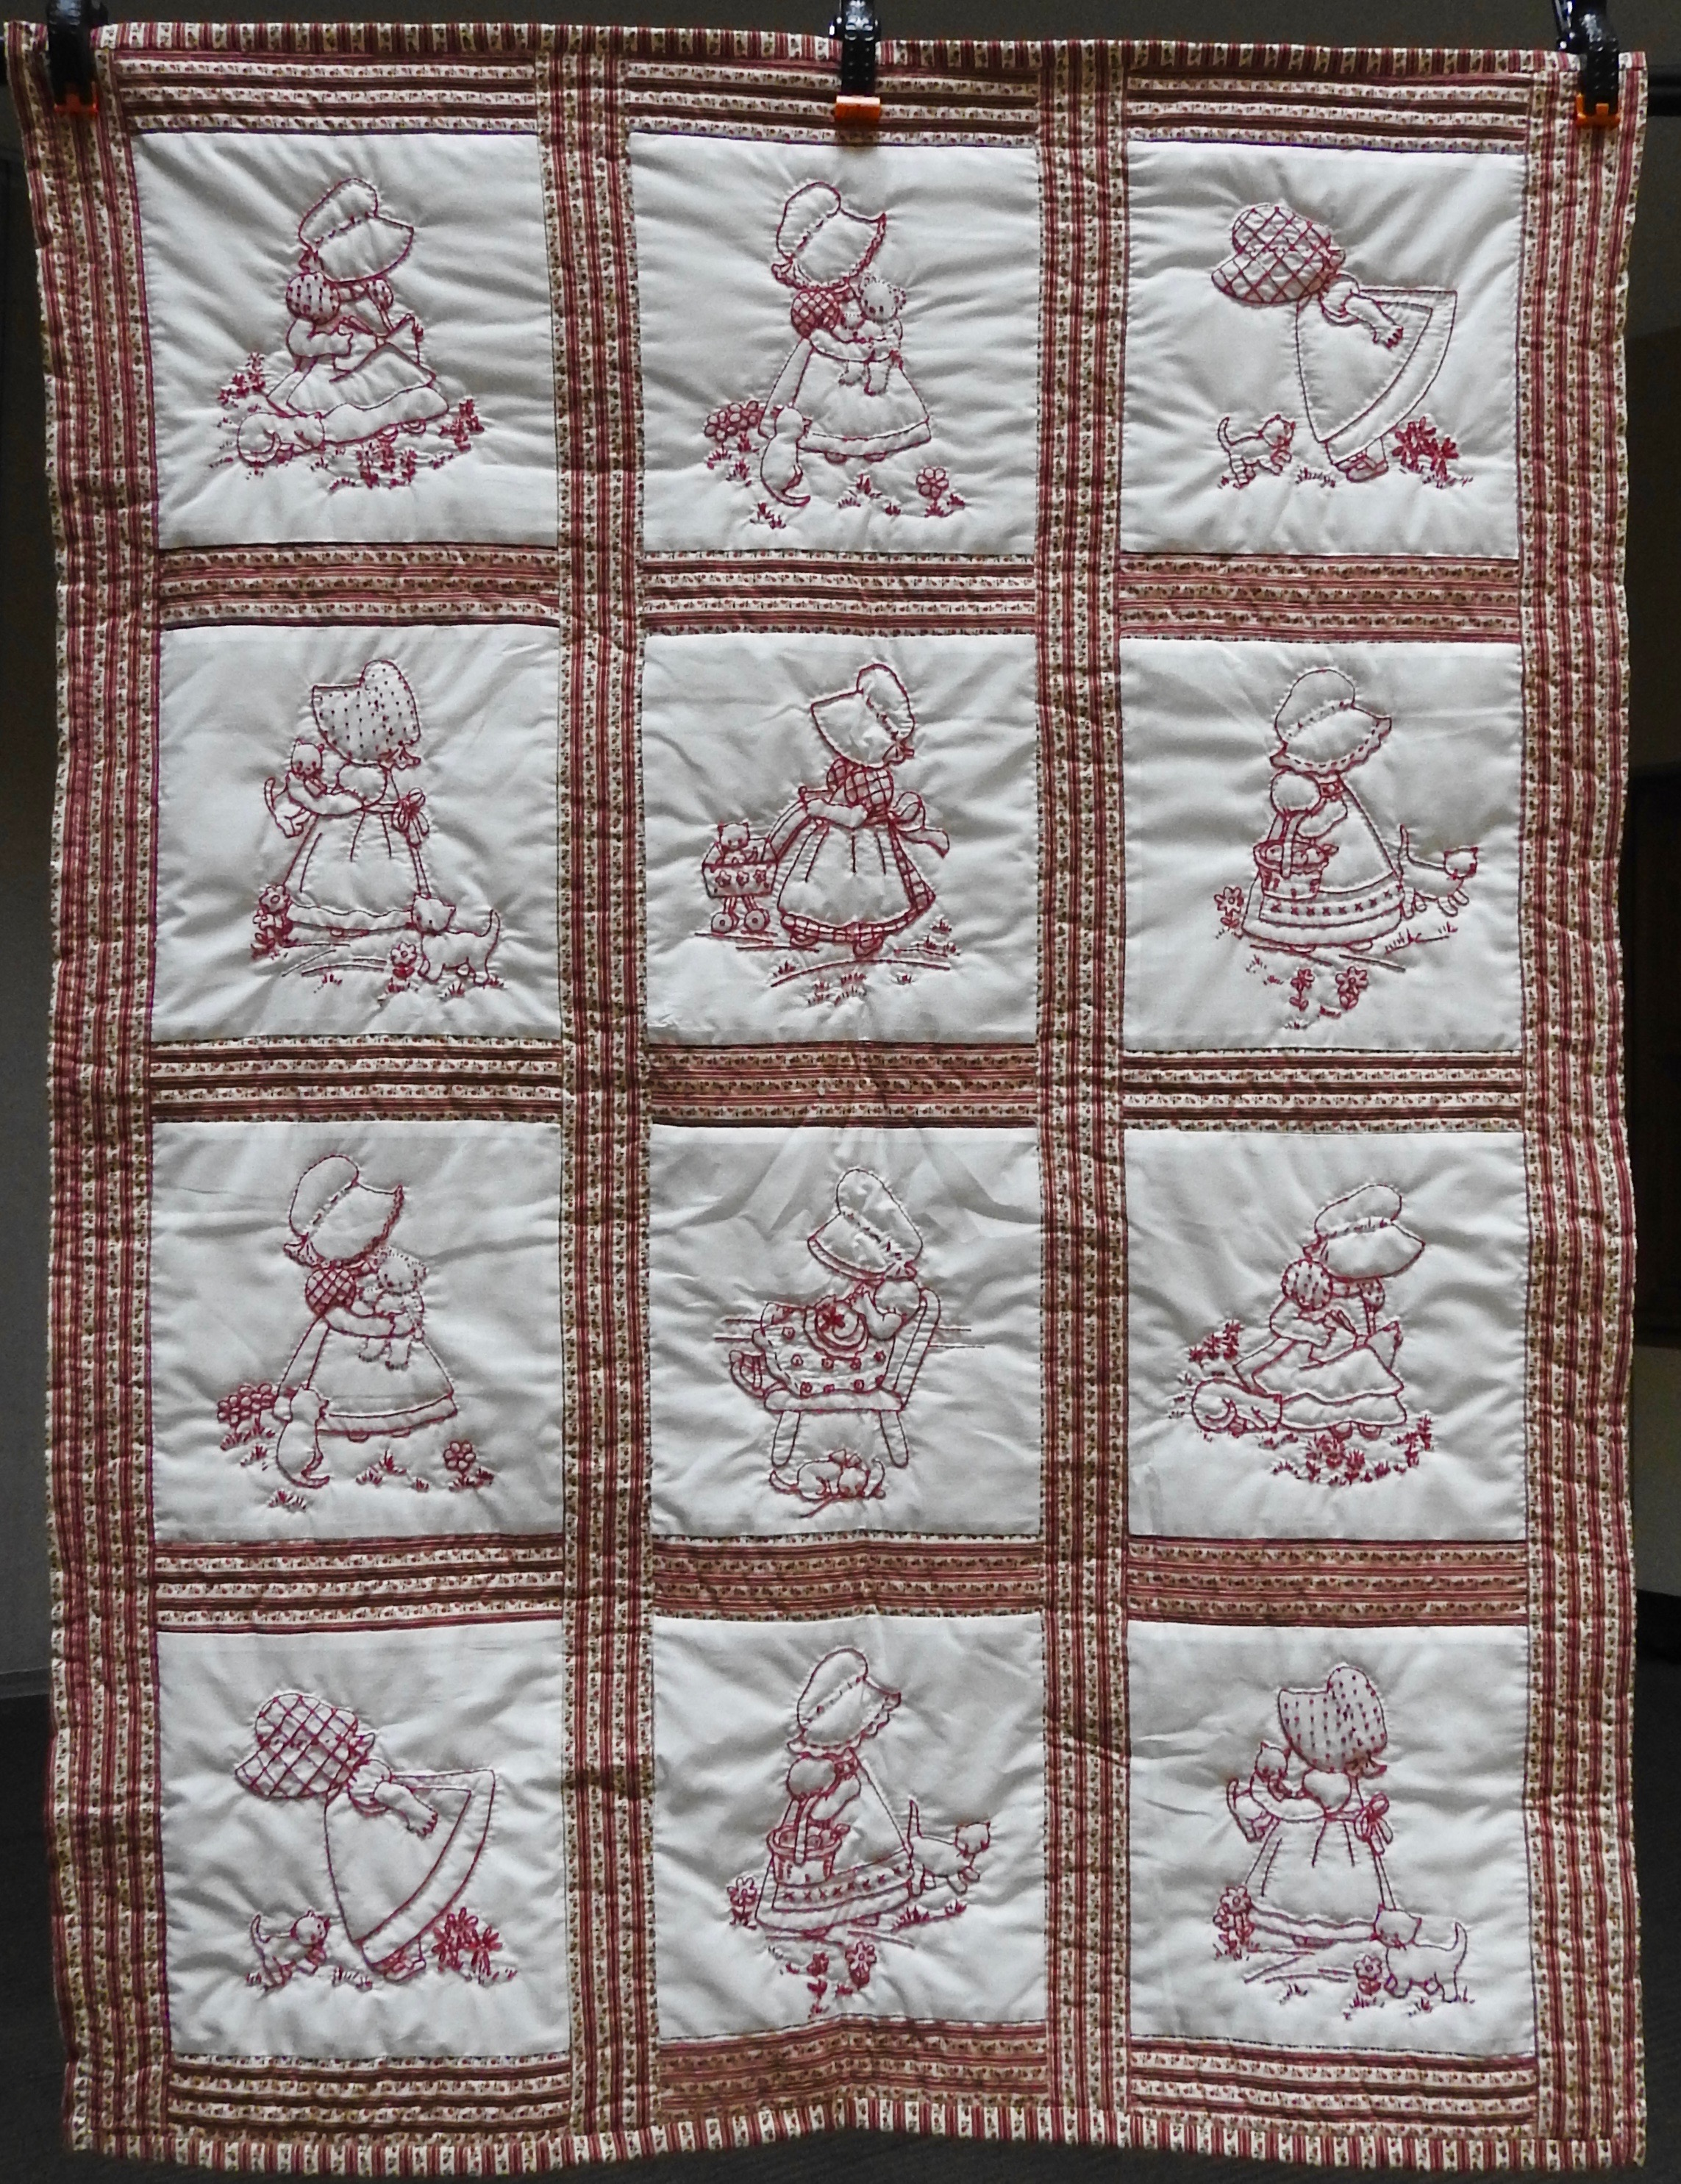 Sunbonnet Sue, Pieced & Embroidered, Hand Quilted by Susie Schlabach, 34 x 44""